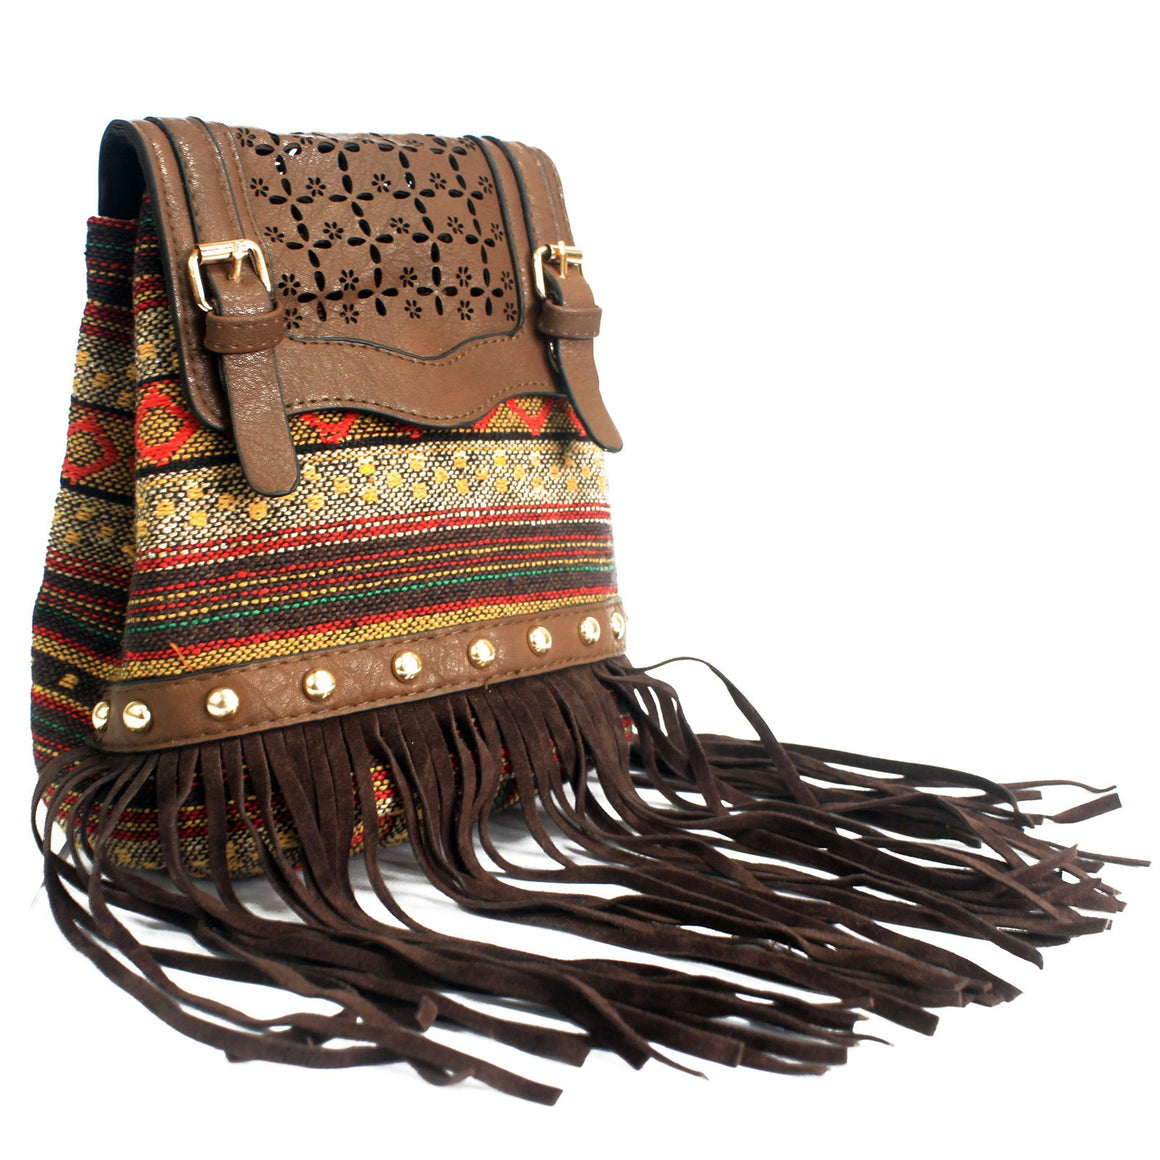 Bags, Chocolate, Chocolate Stripy With Fringe, Gift, Italian Style, Italian Style Handbags, Milan, Shoulder strap